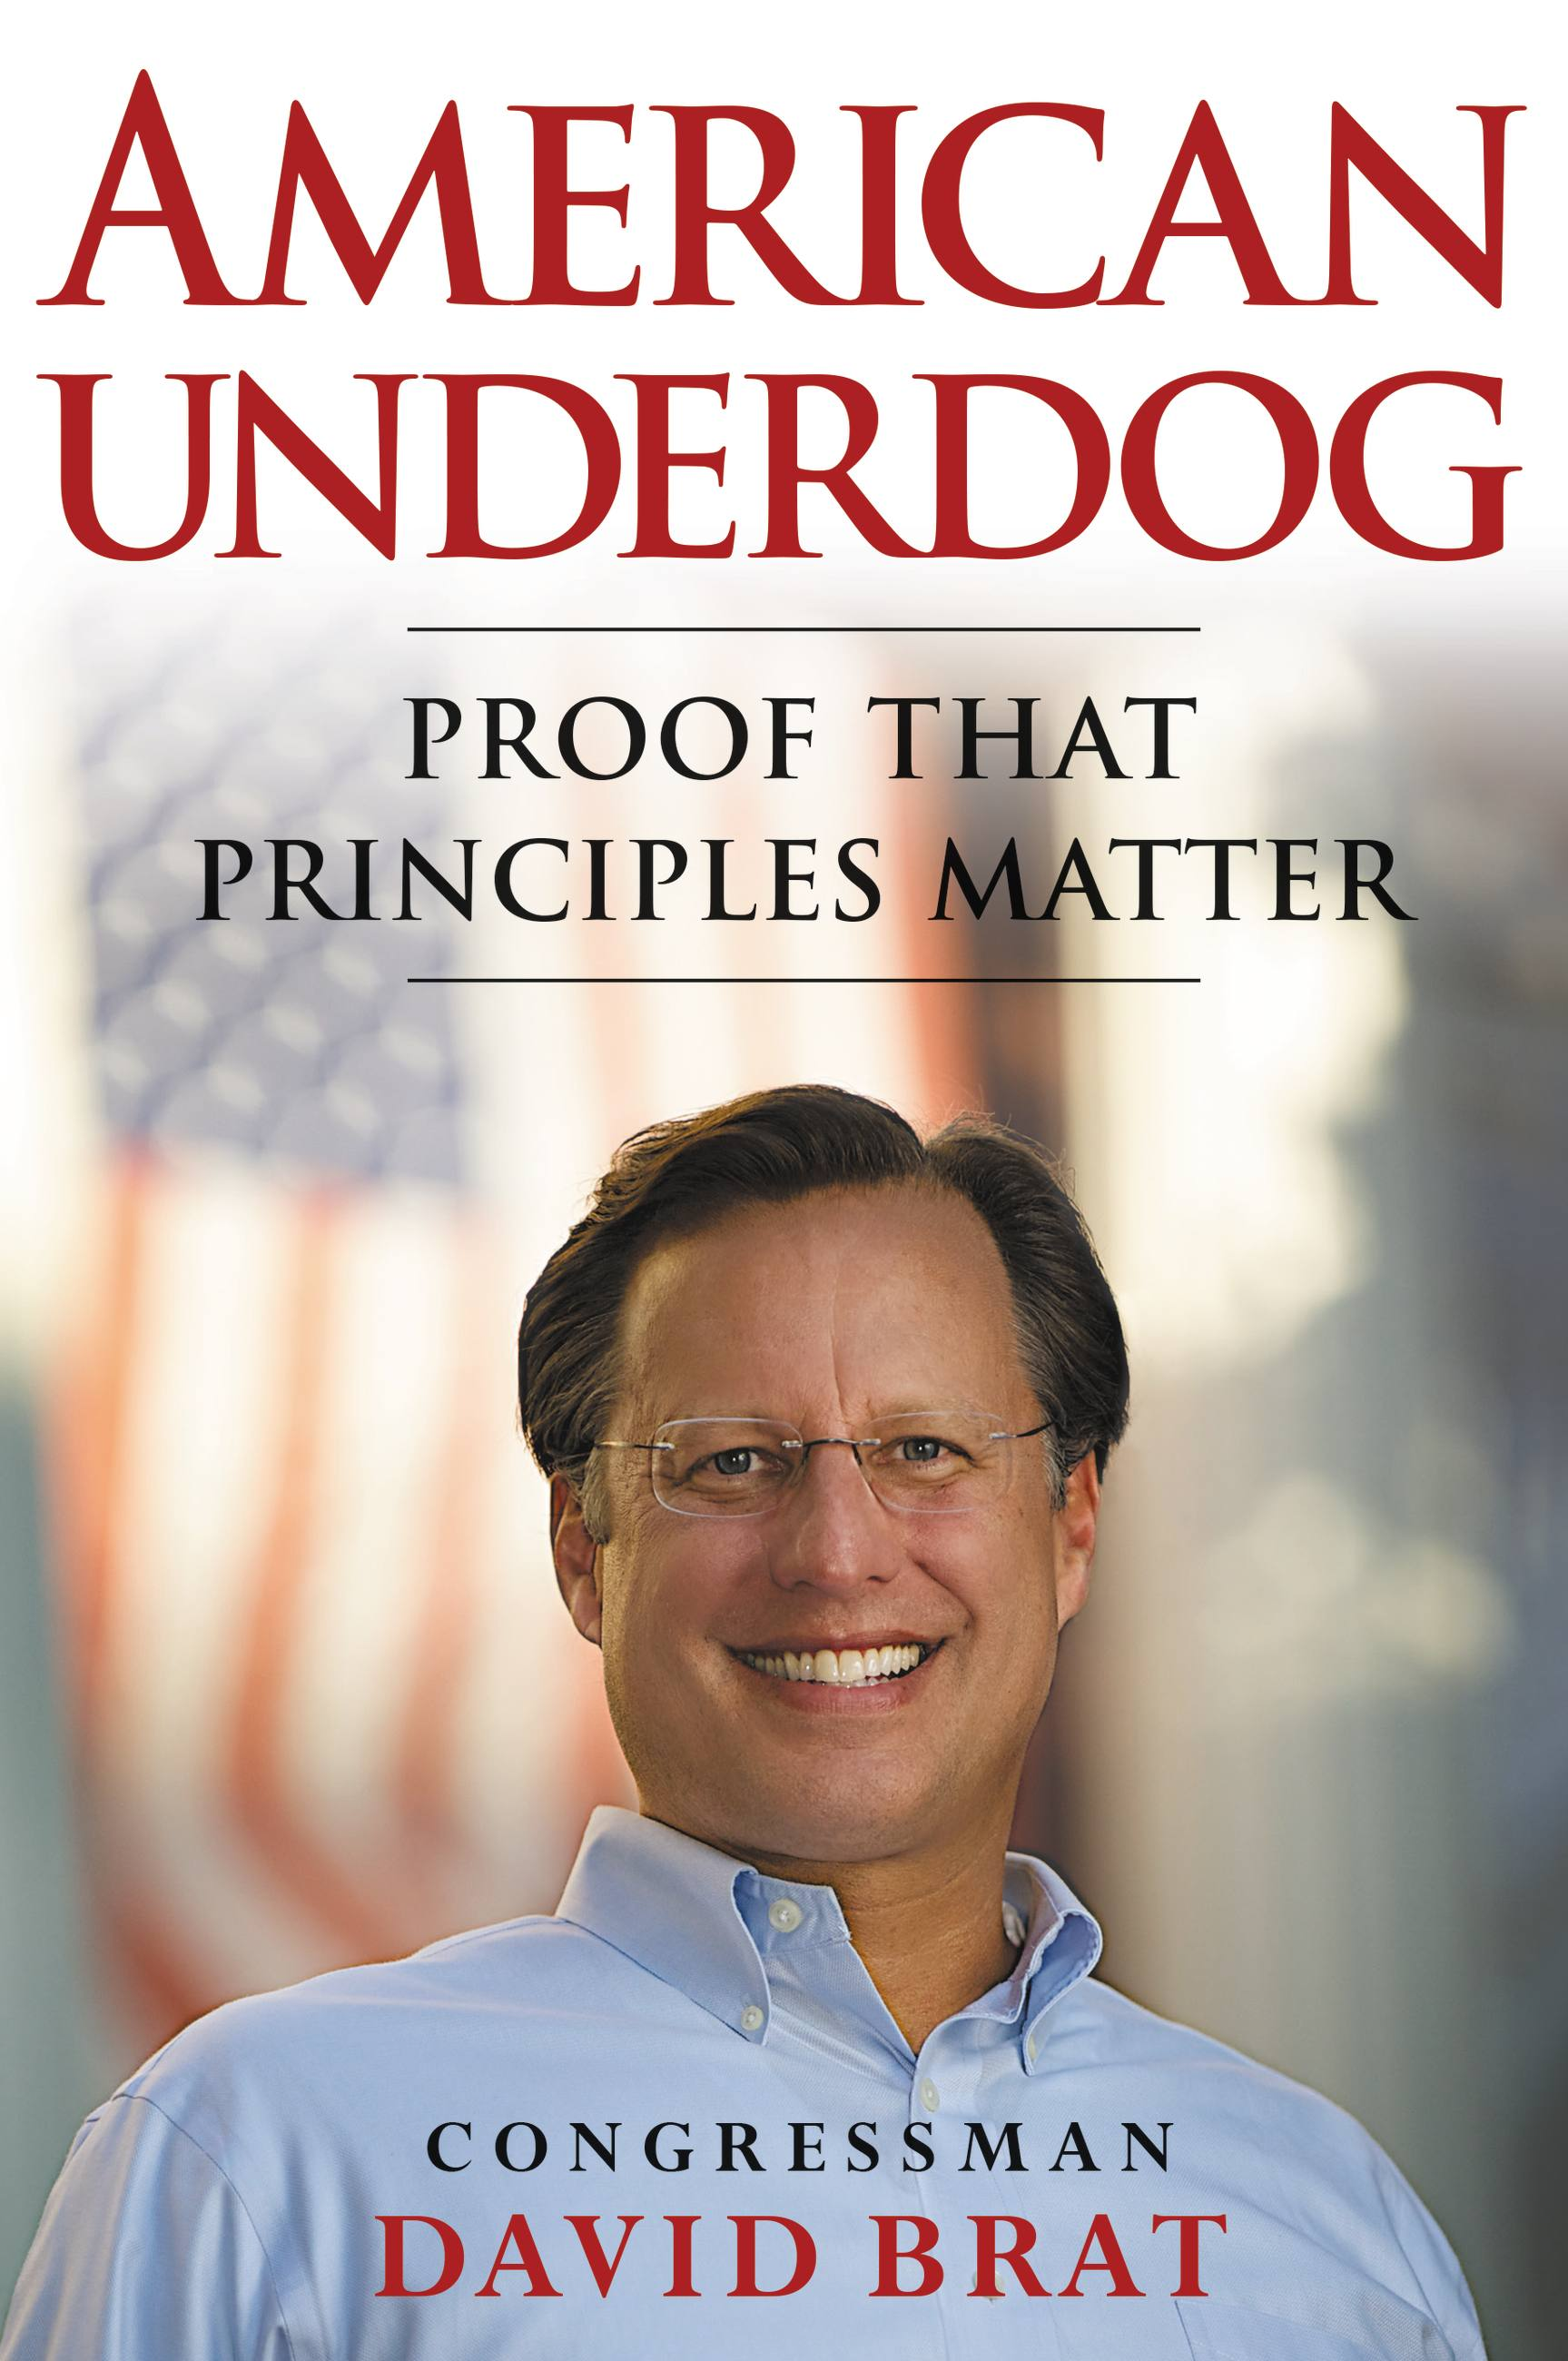 American Underdog Proof That Principles Matter